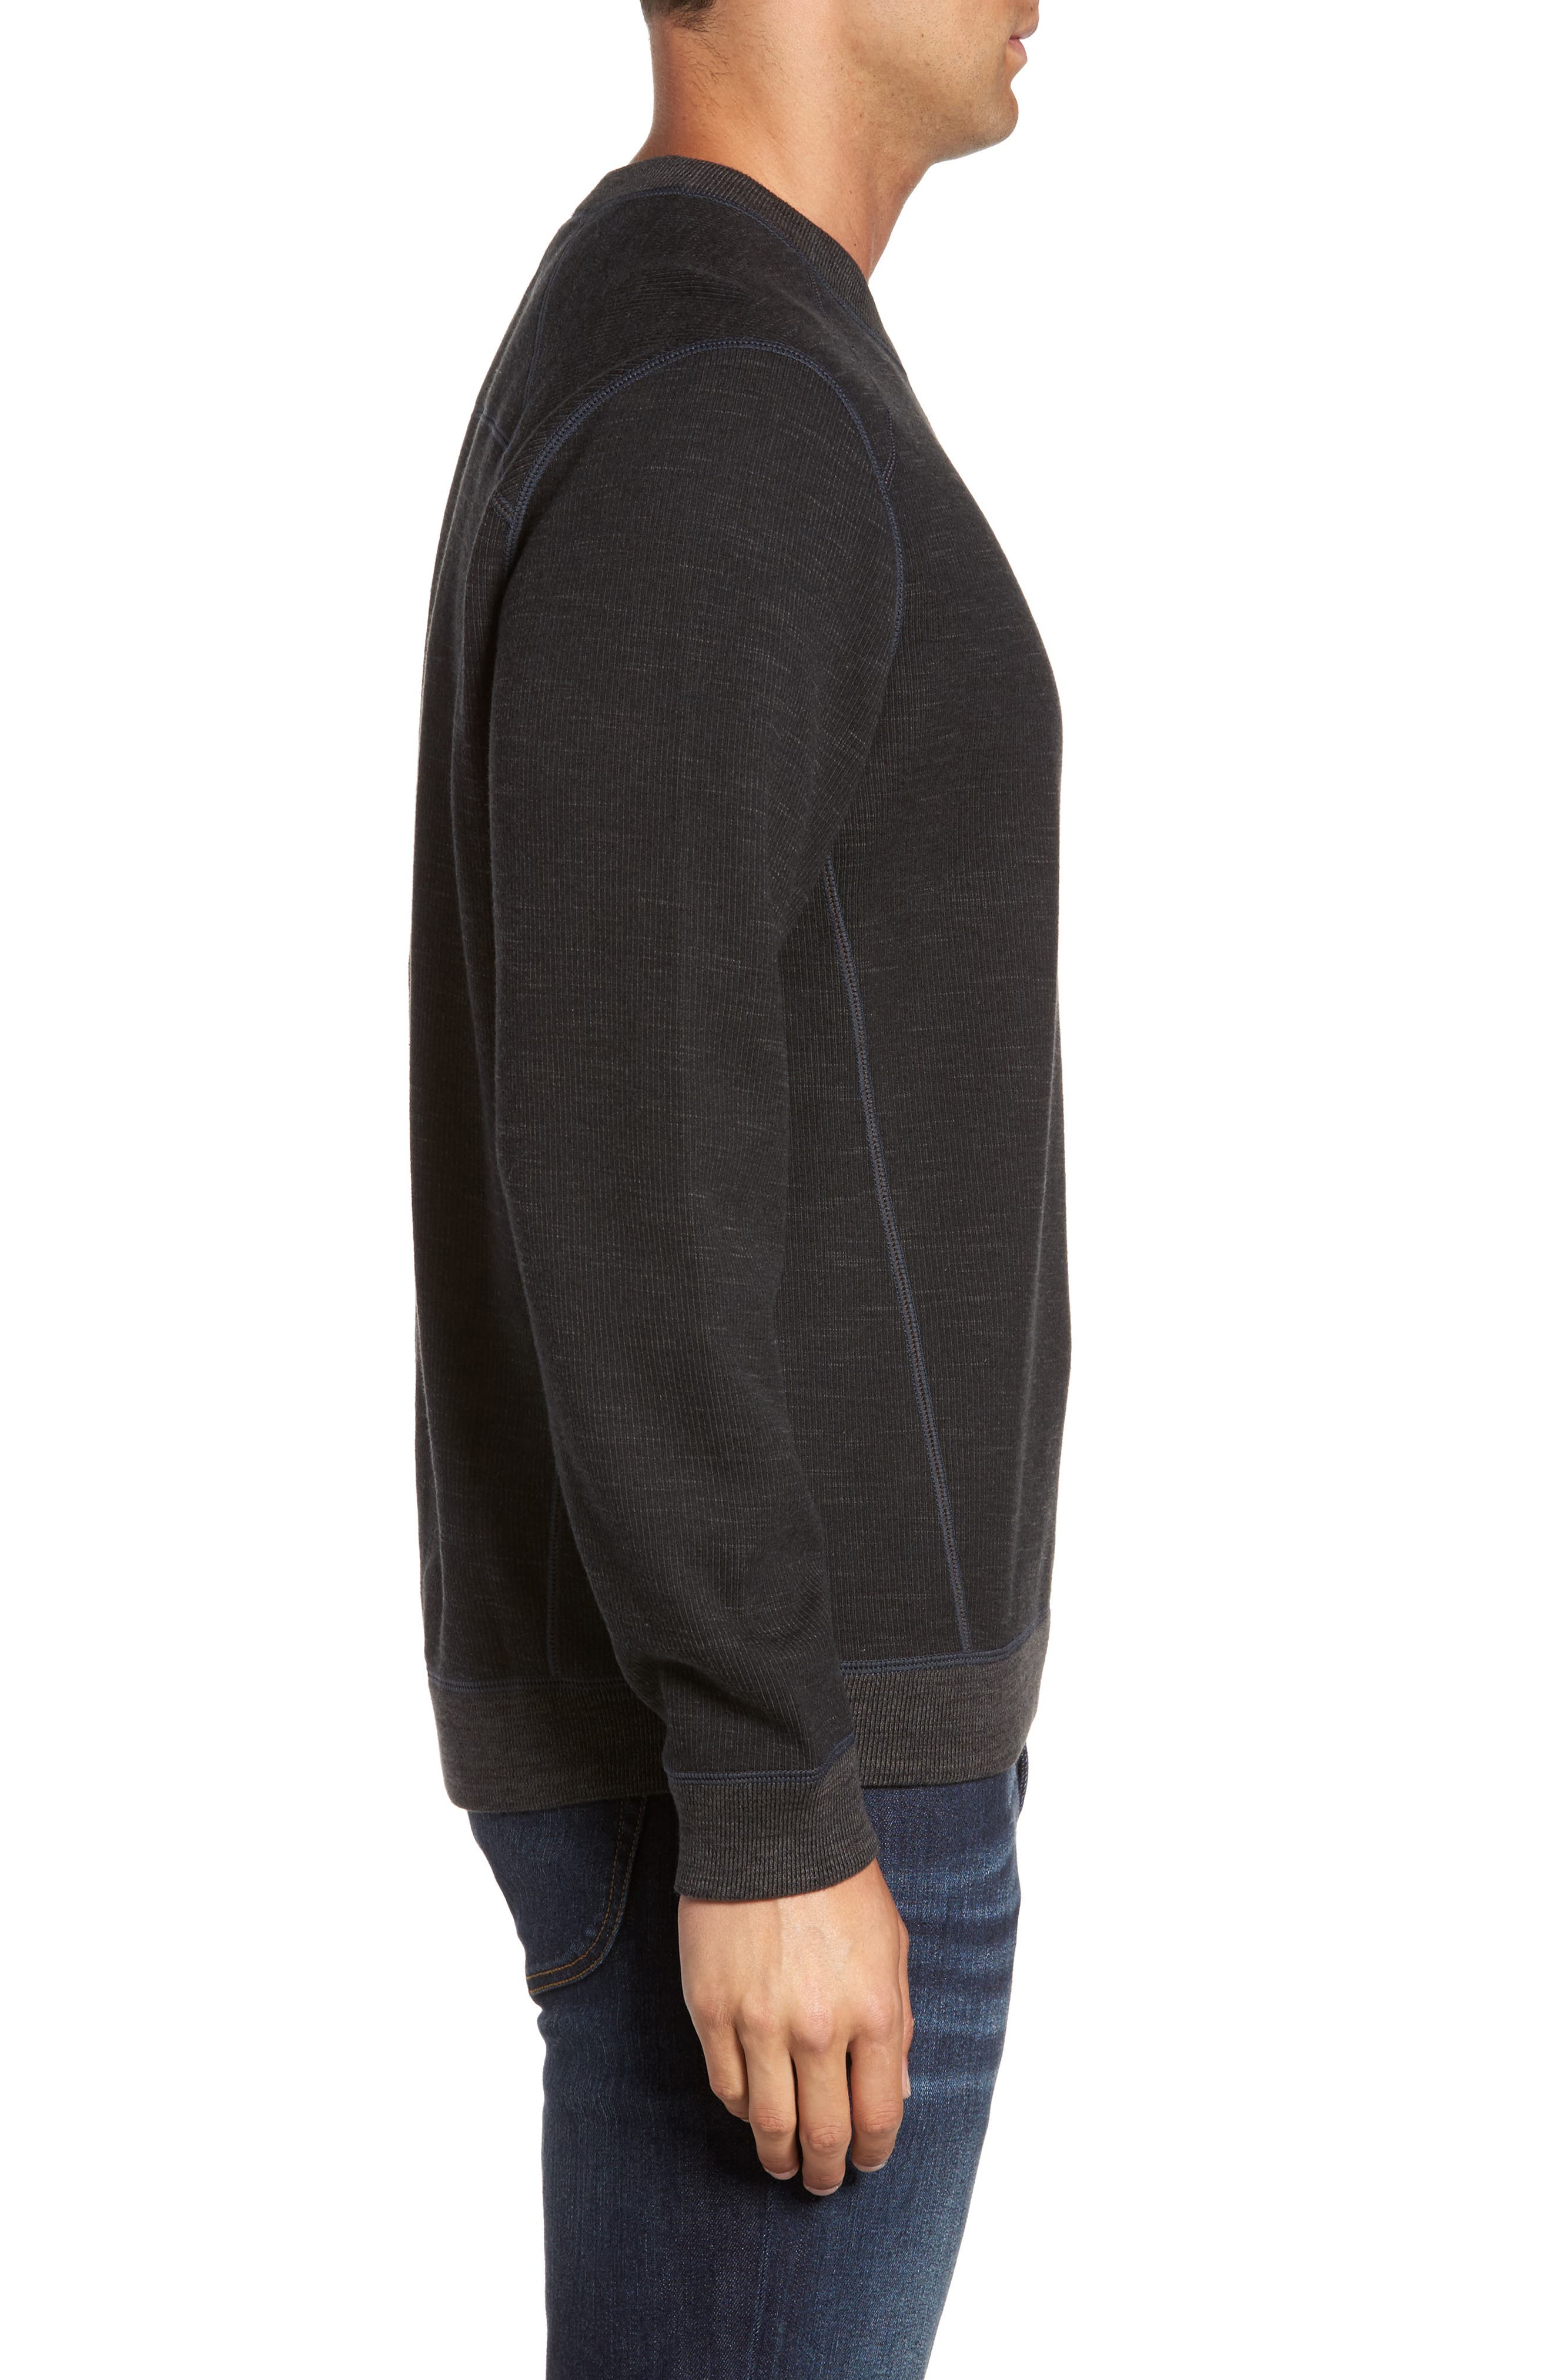 Flipside Pro Reversible Sweatshirt,                             Alternate thumbnail 3, color,                             Black